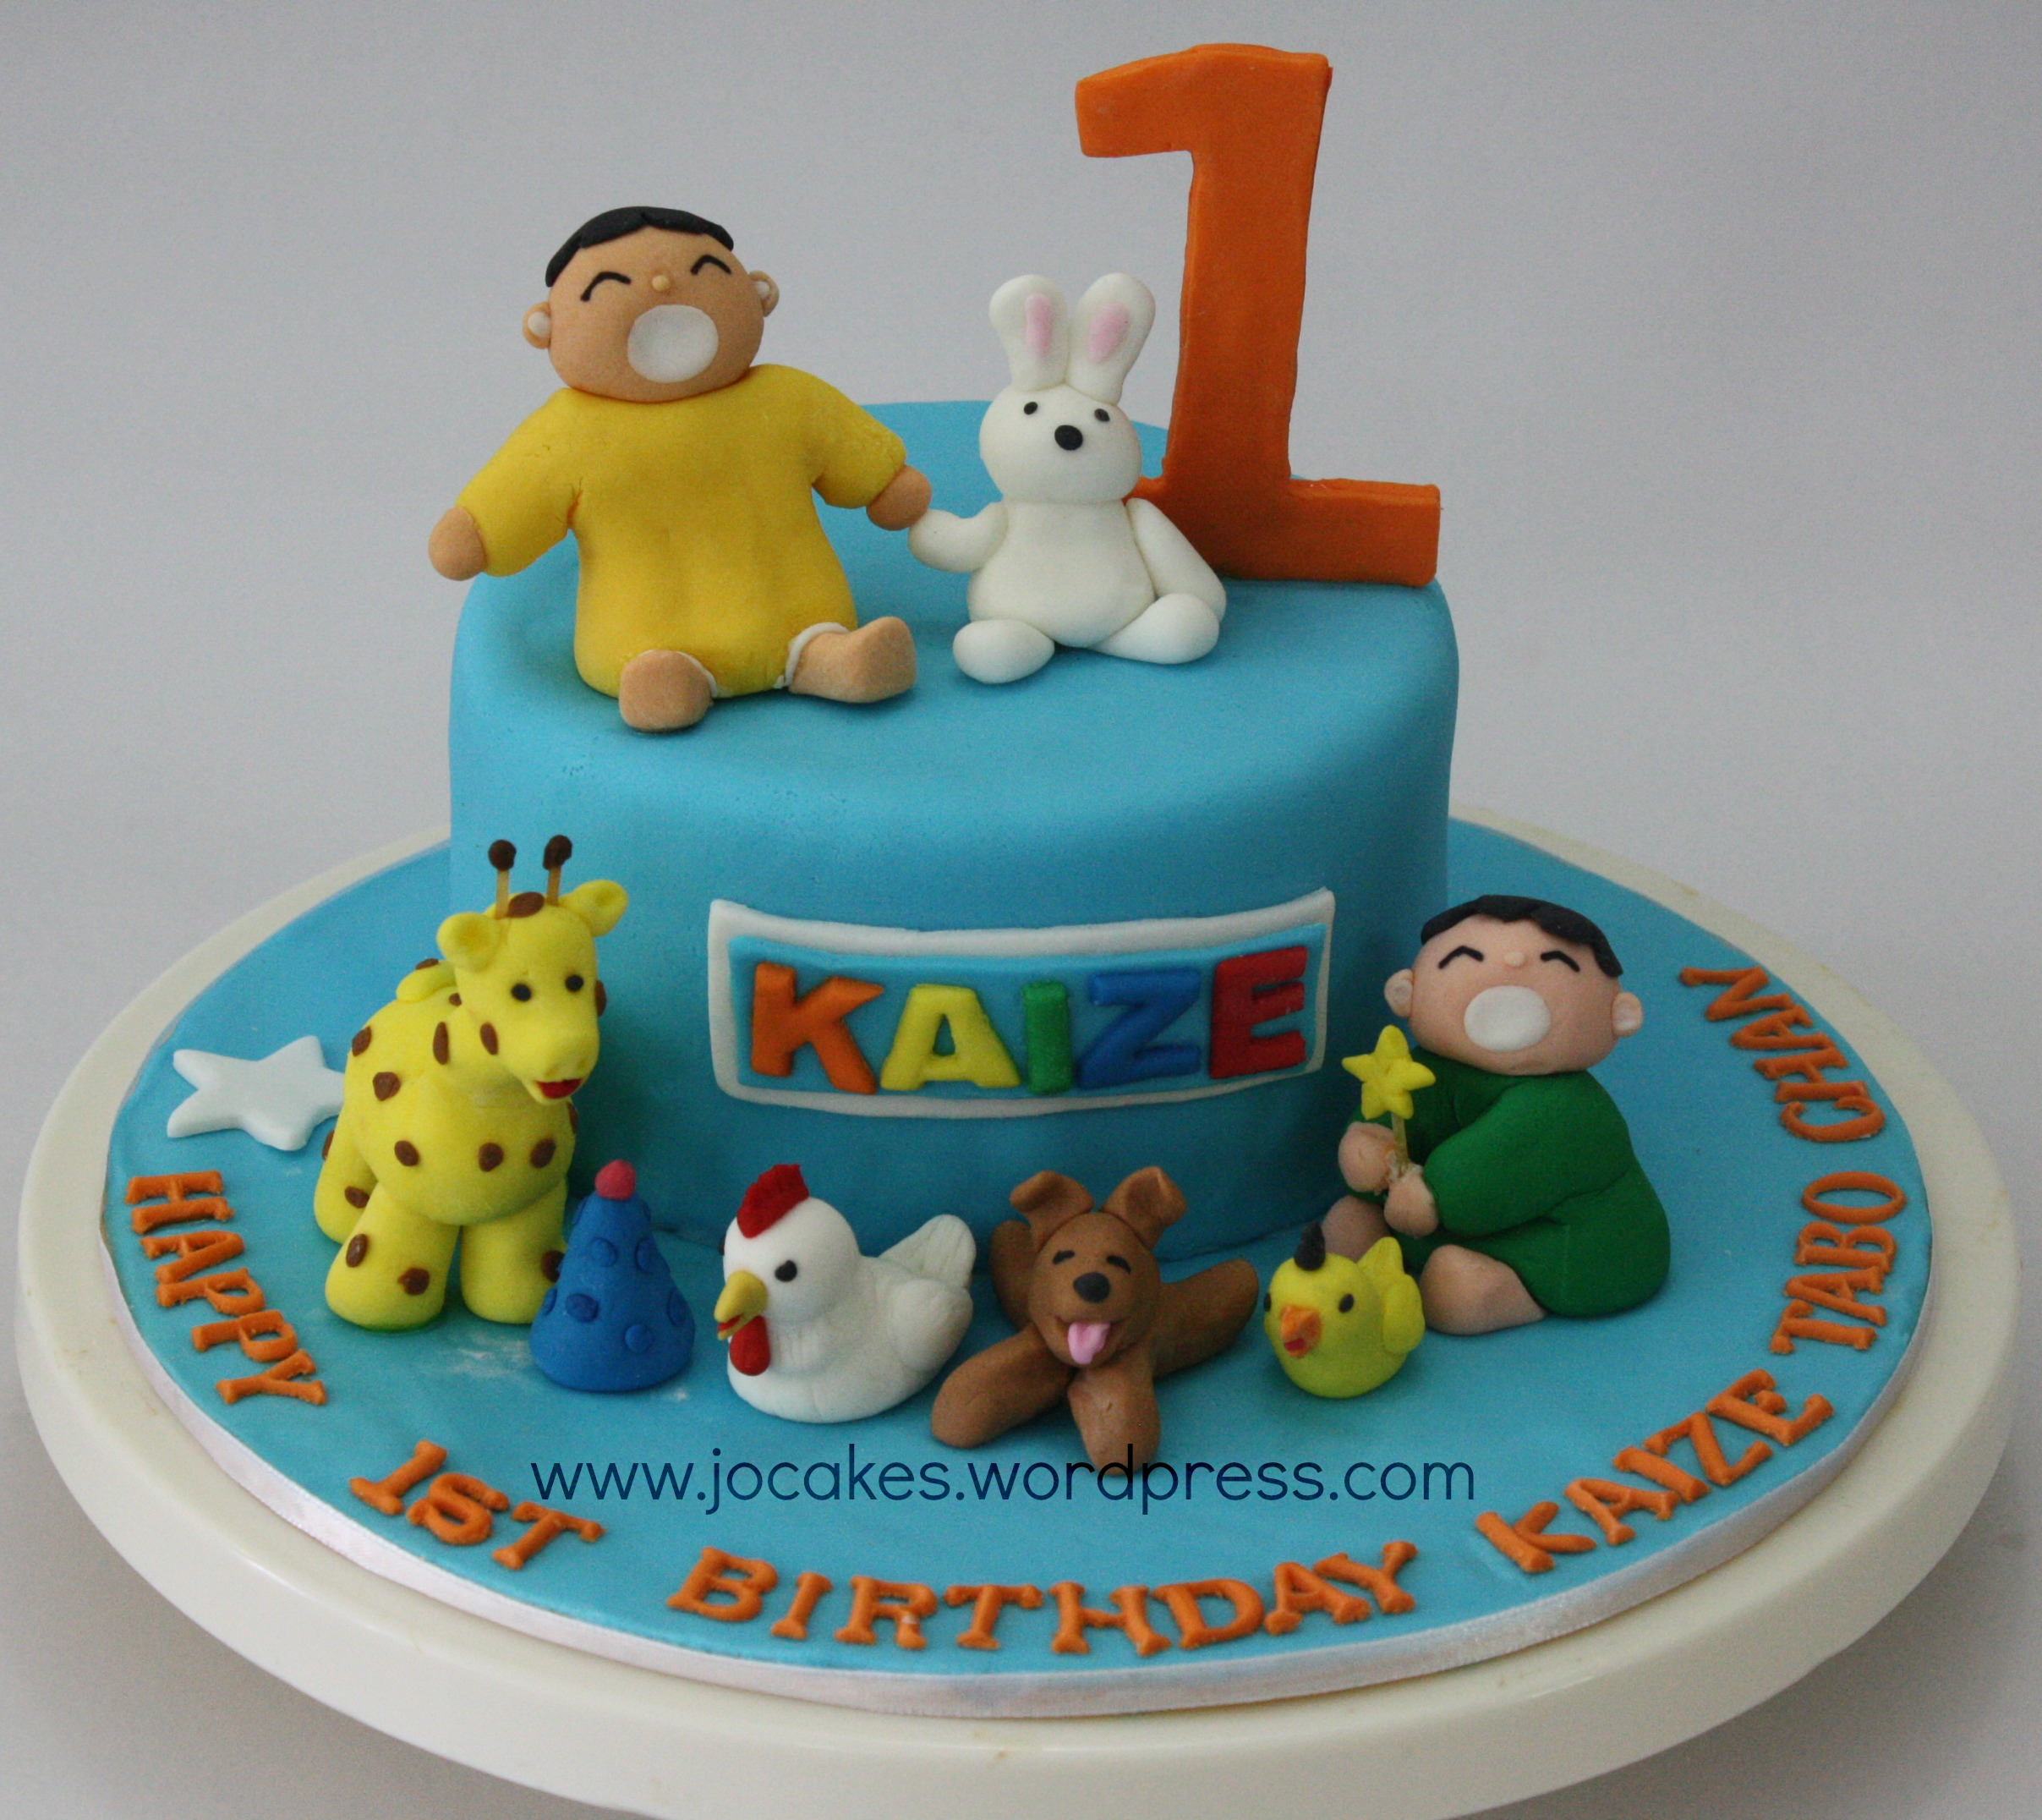 9 Boys Sports Birthday Cakes For 1 Years Old Photo One Year Old